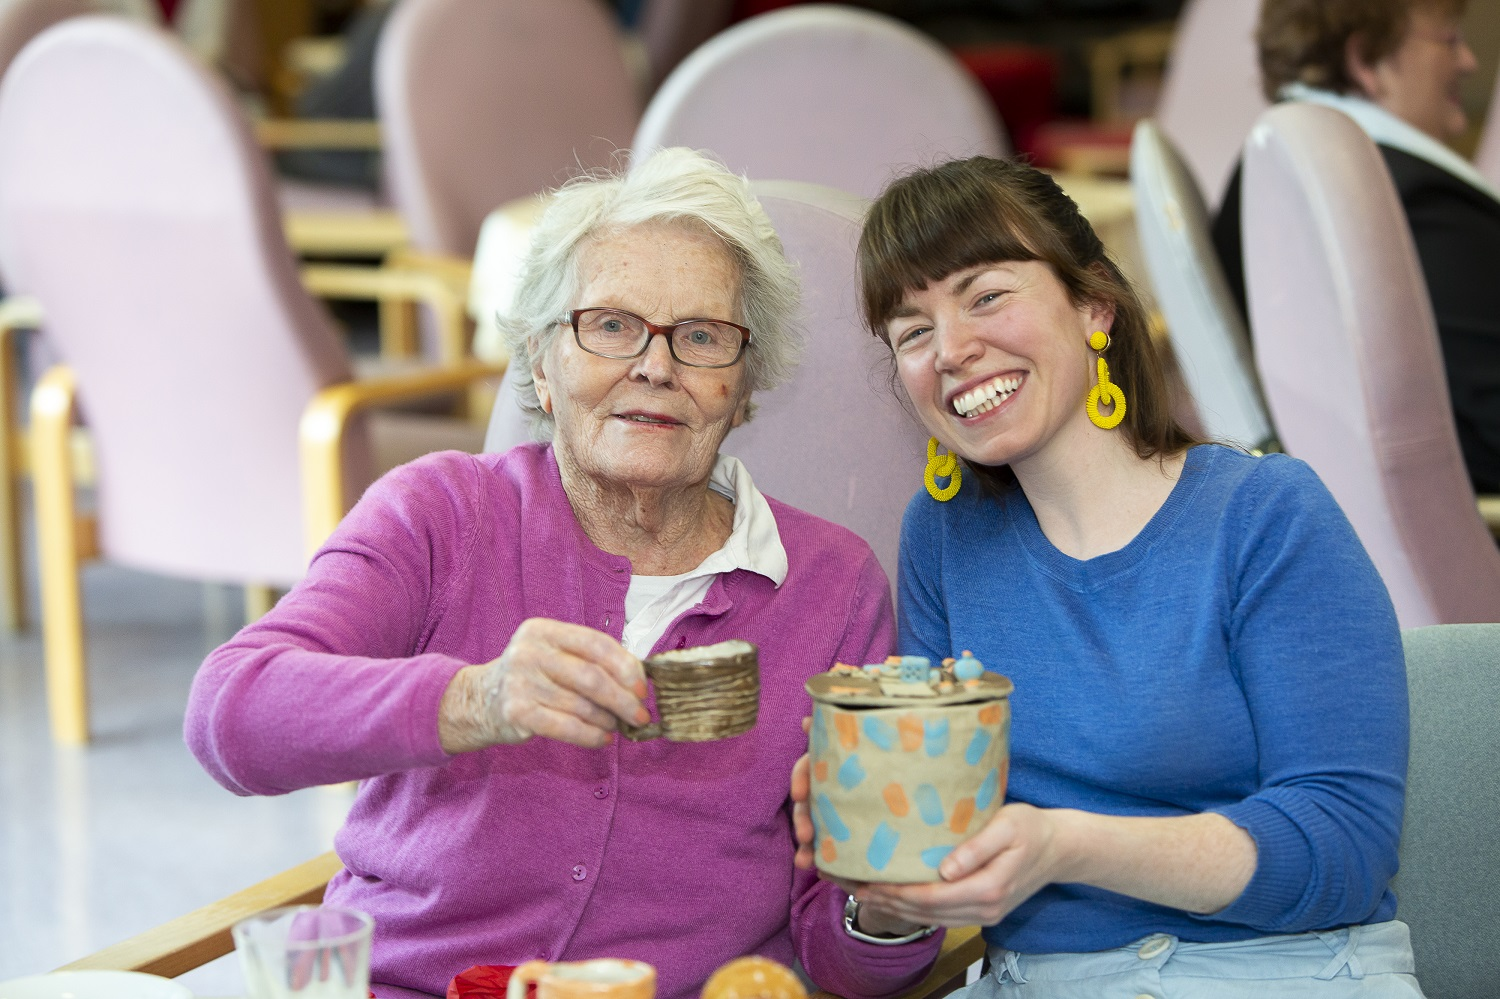 Bealtaine Festival brings arts celebrations to nursing homes this Friday